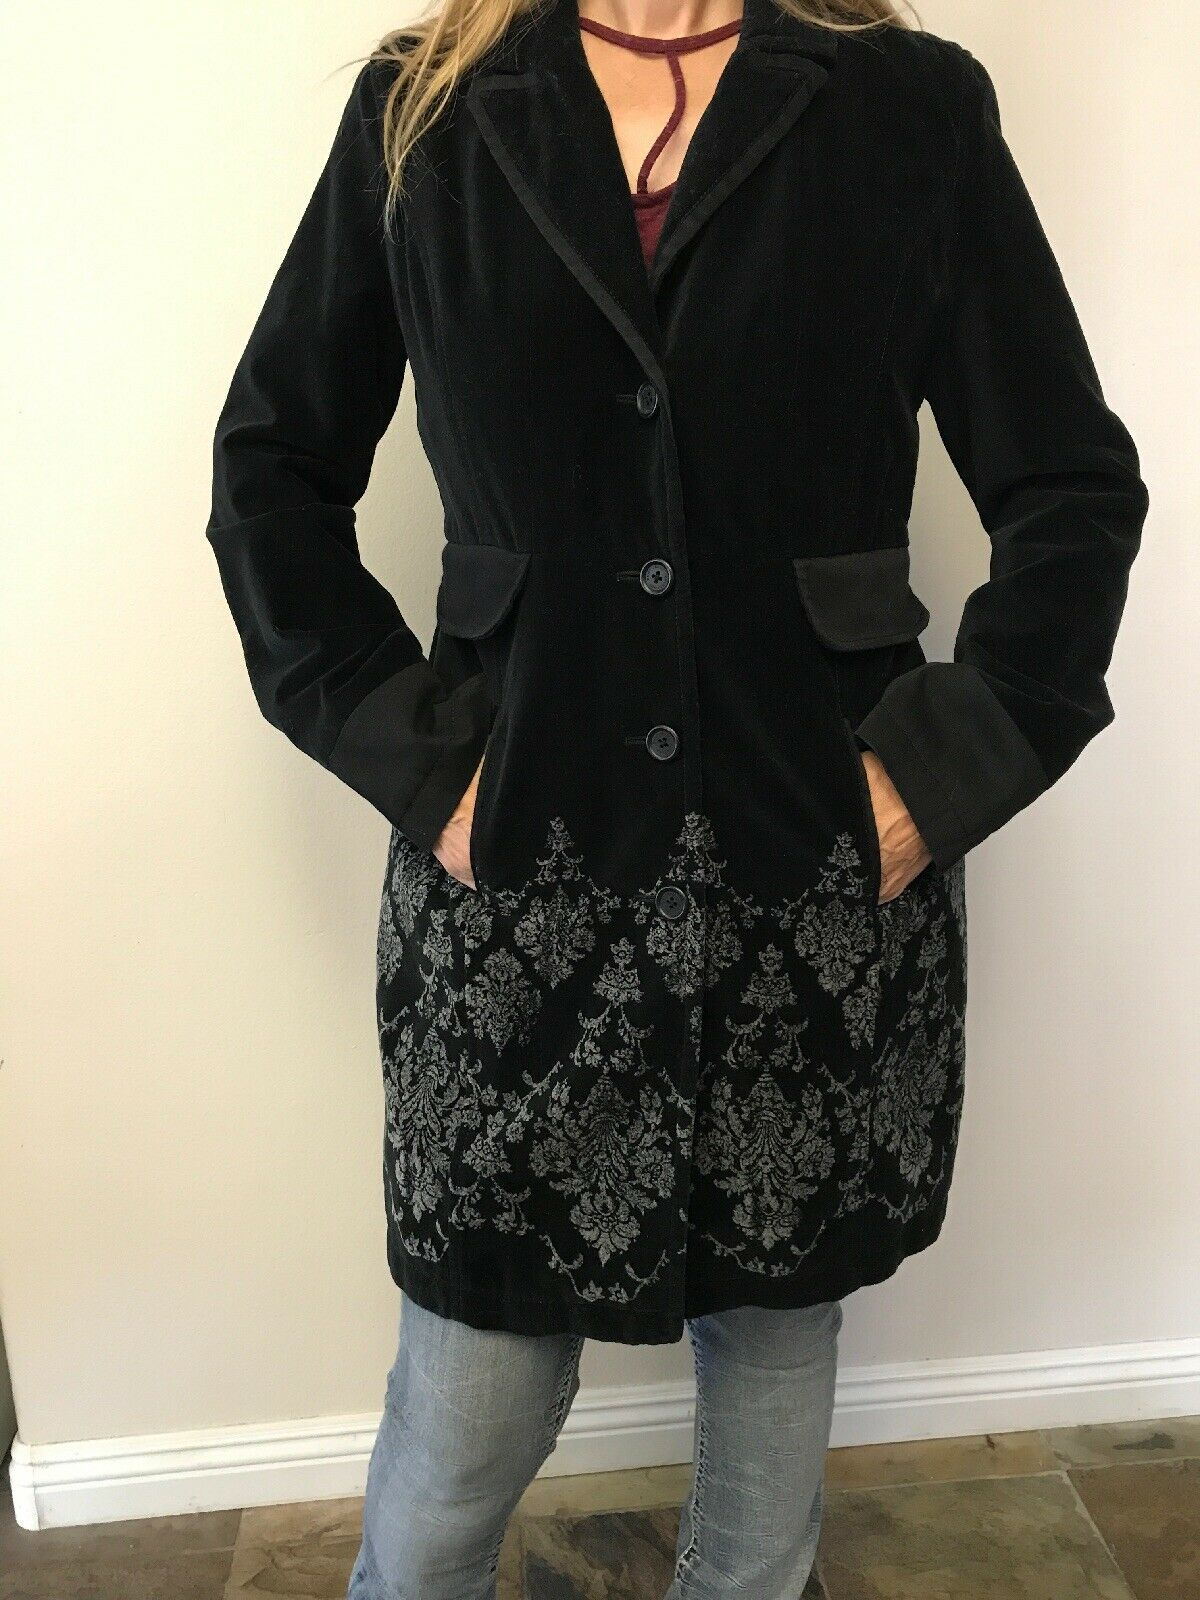 DKNY BLK VELOUR Dresscoat, M, Lined Great P O Condition